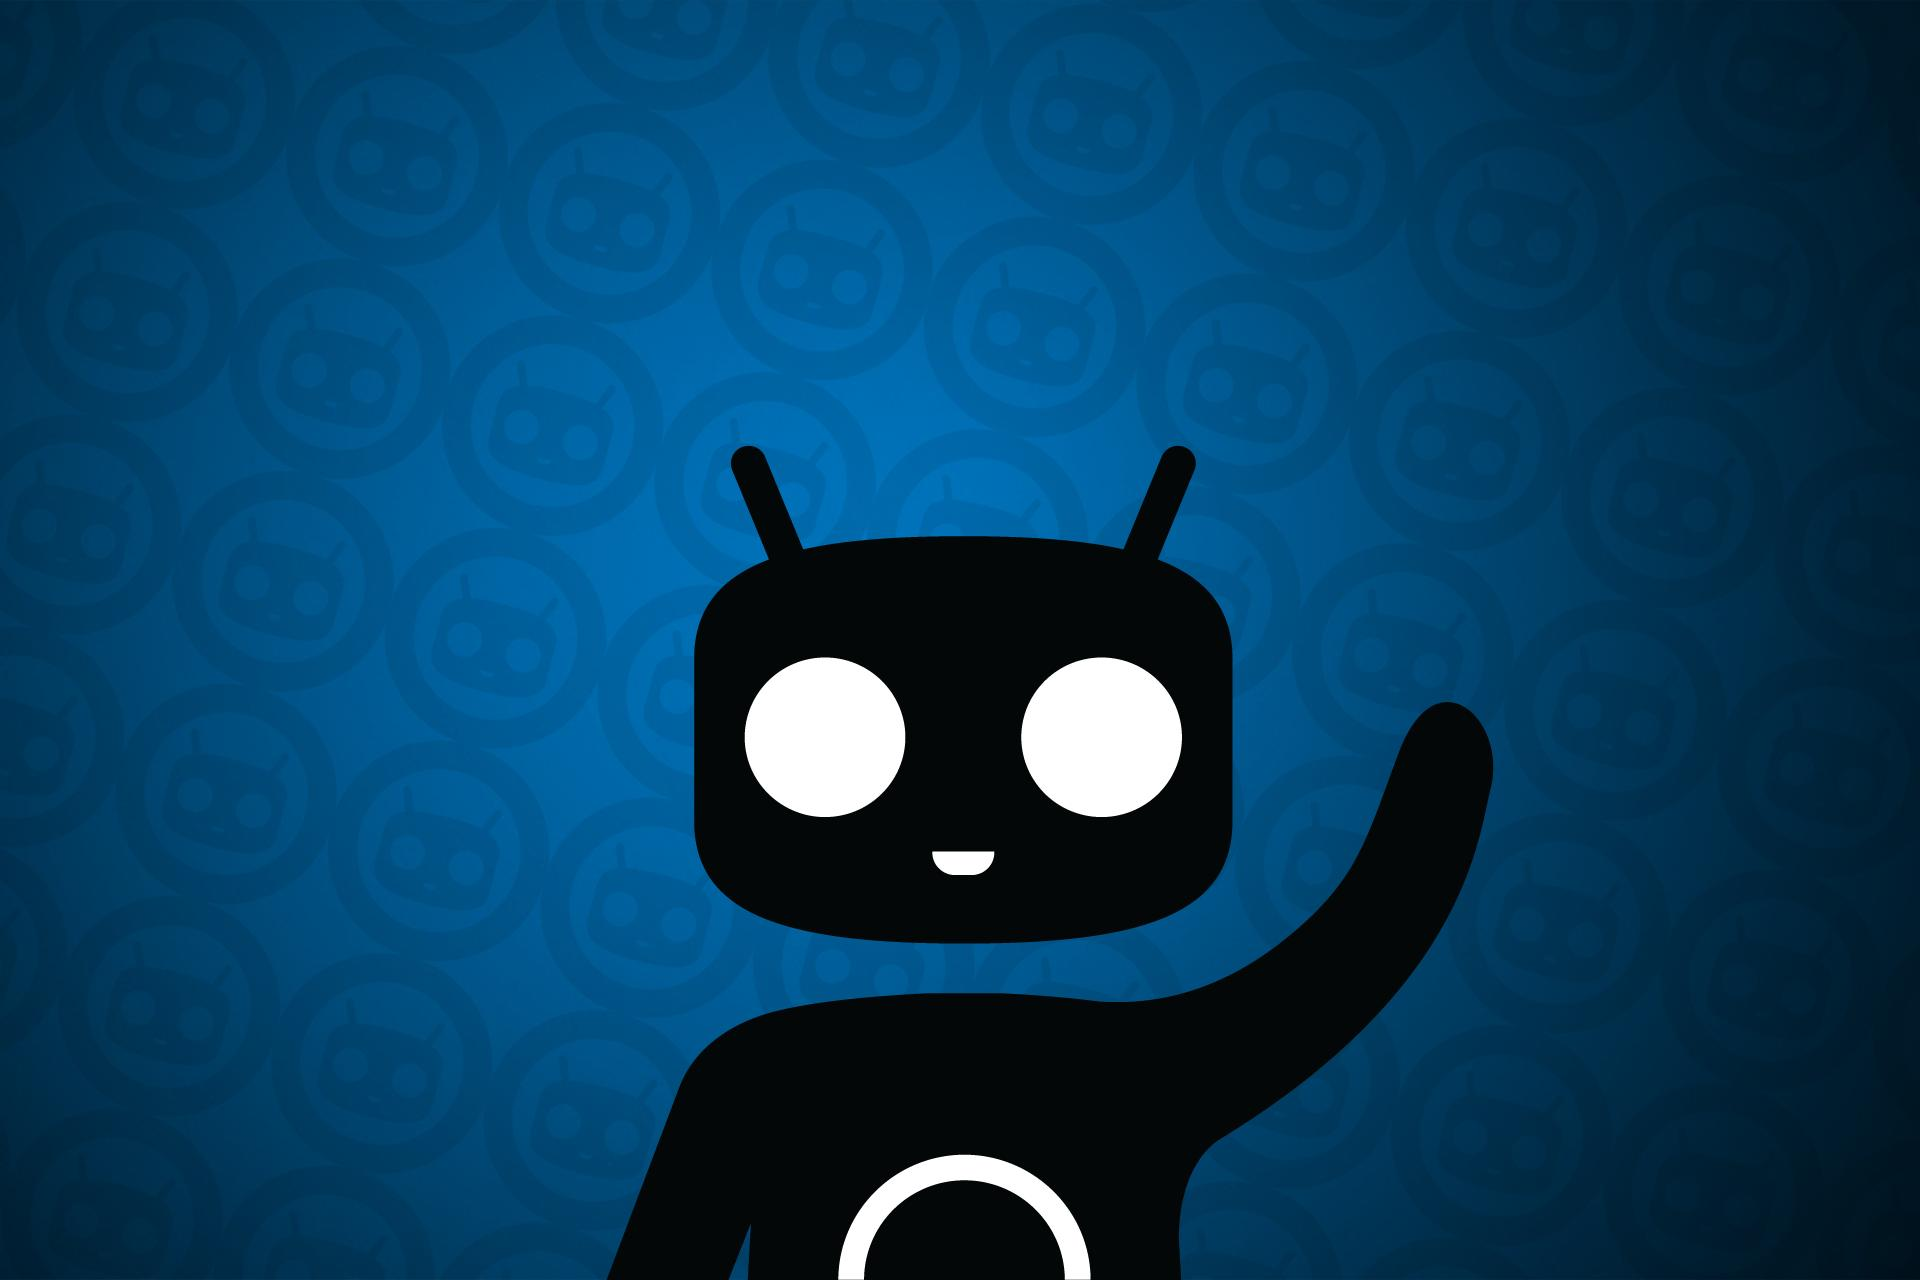 Cyanogenmod - Learn how it makes your Android great